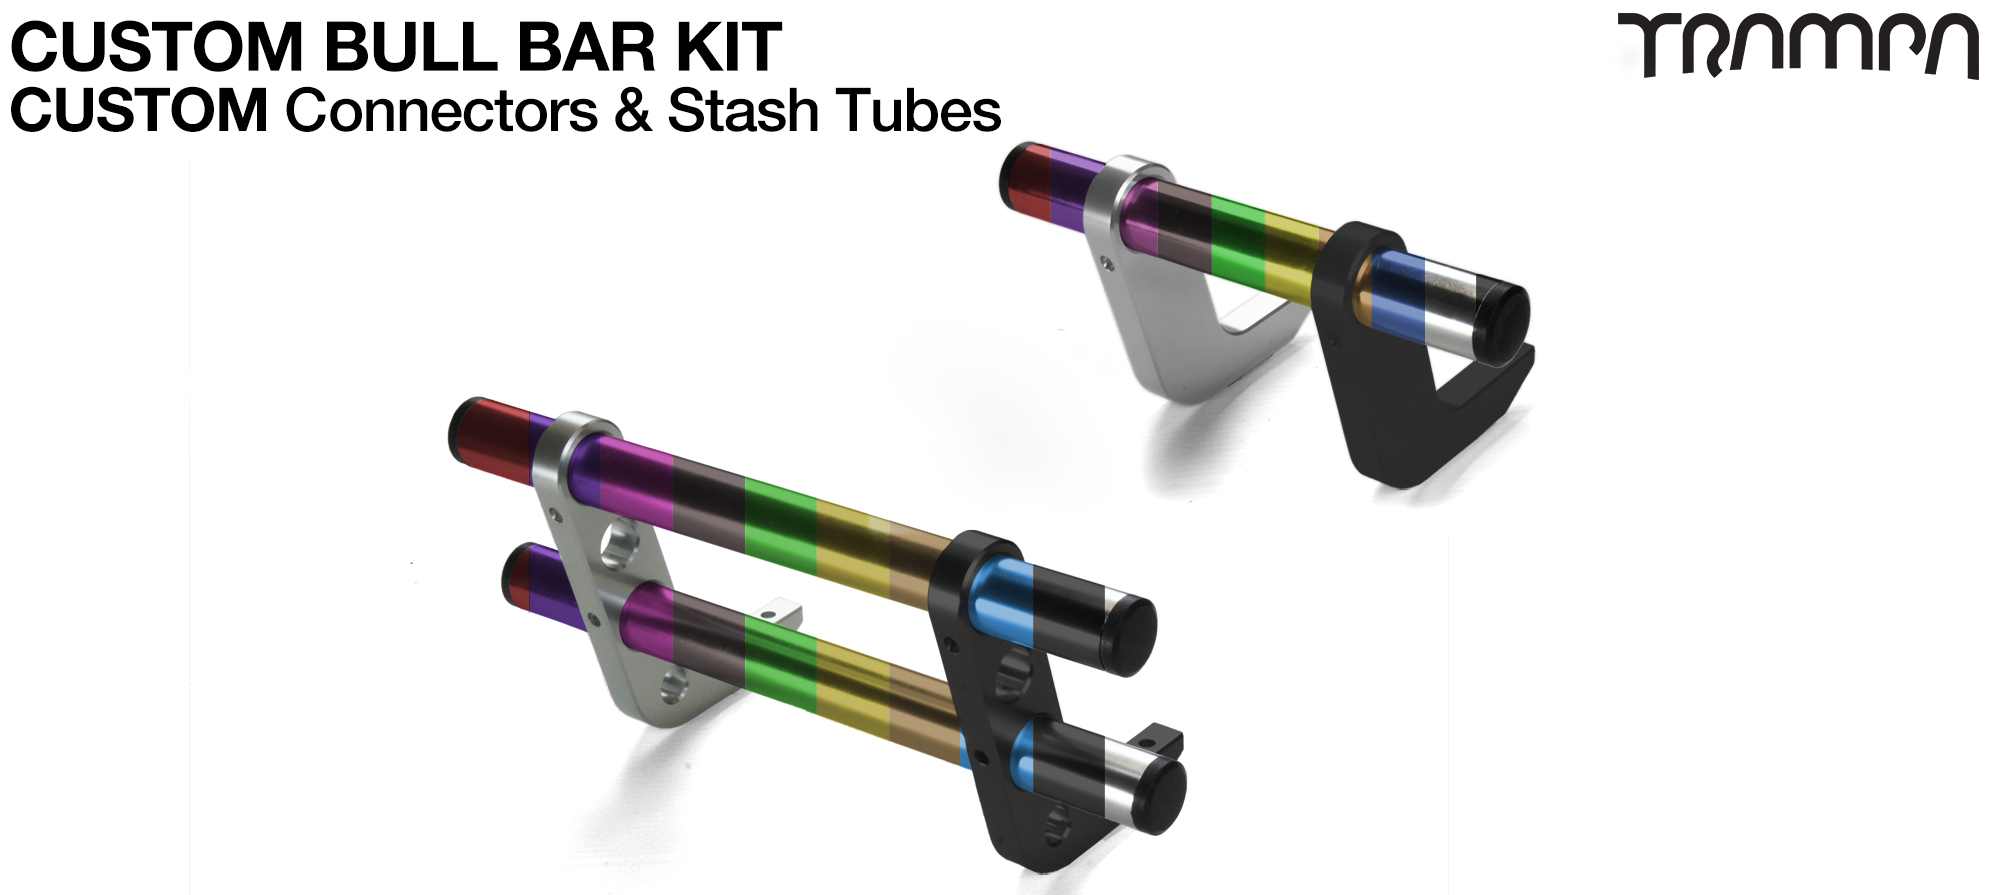 Please add & fit 1x set of Mountainboard BullBars (+£50)